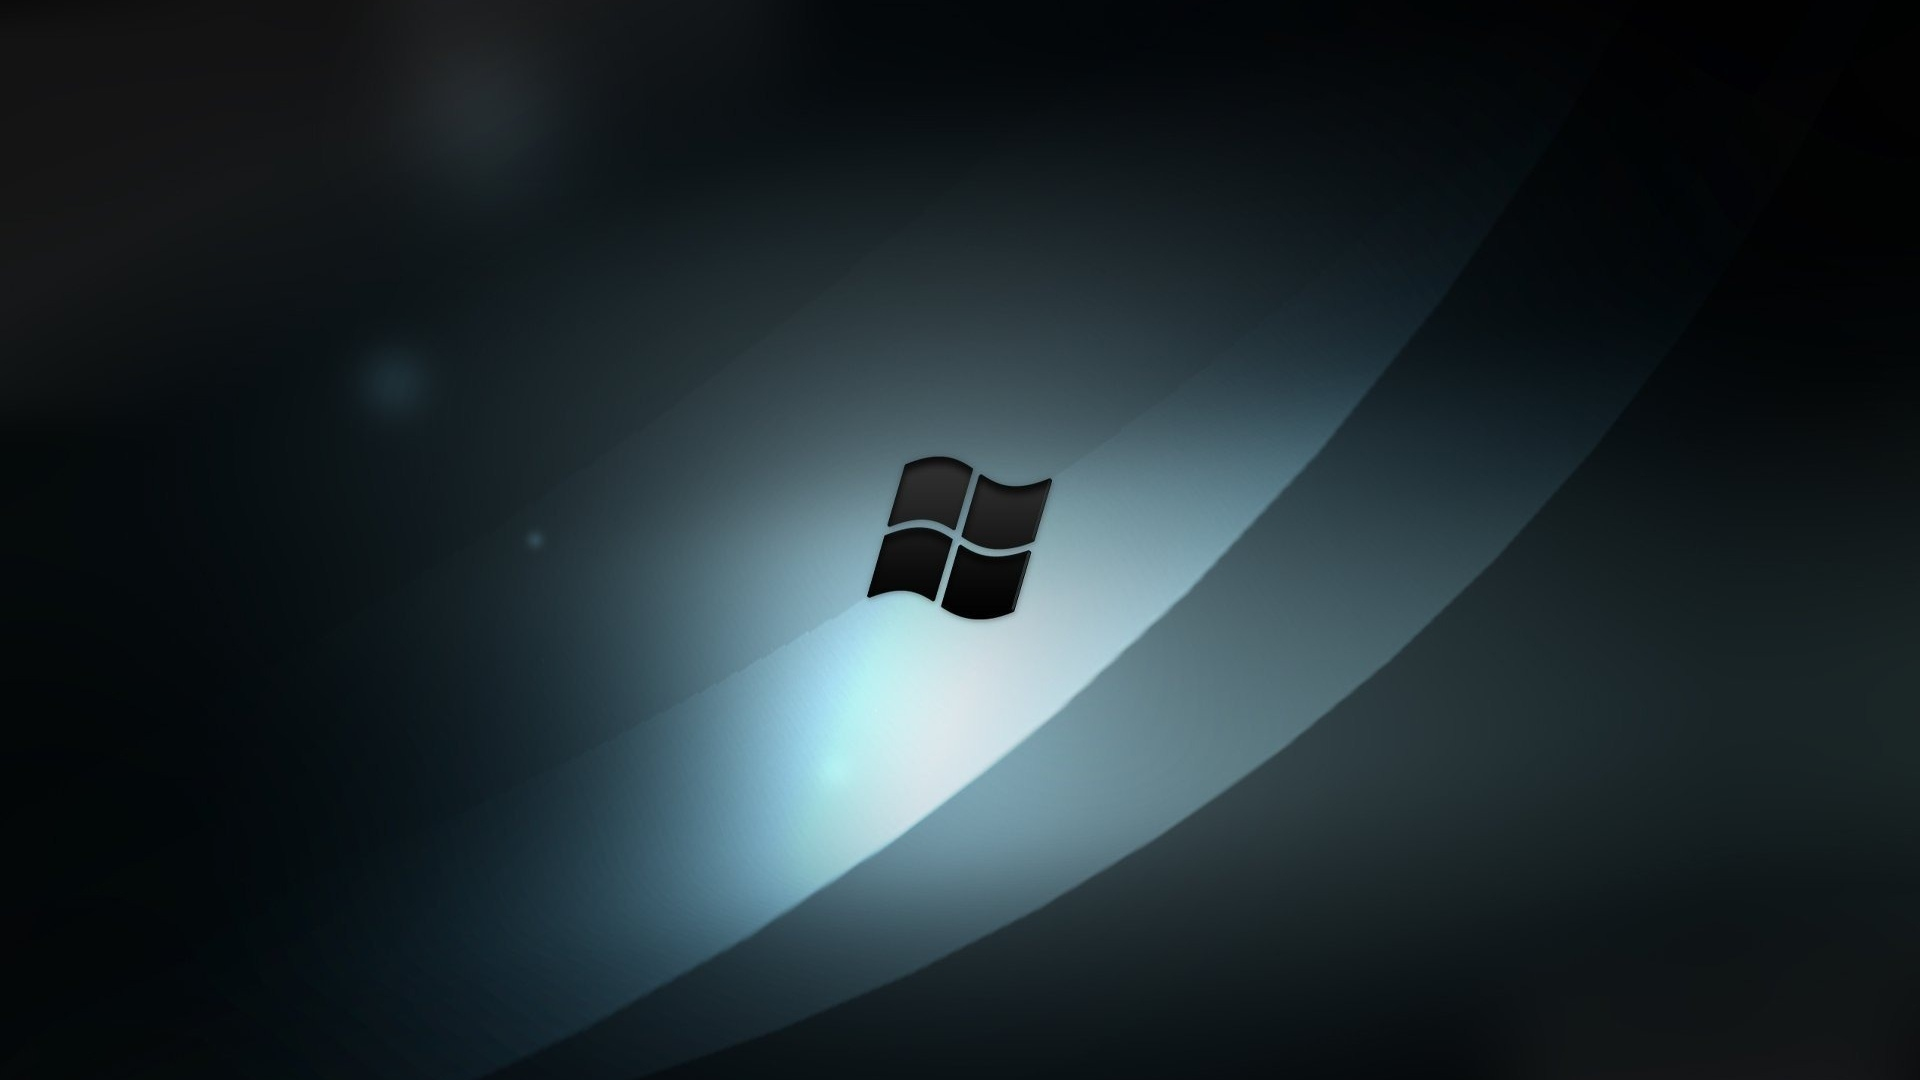 Windows Wallpaper Hd 1920x1080 Posted By Michelle Tremblay